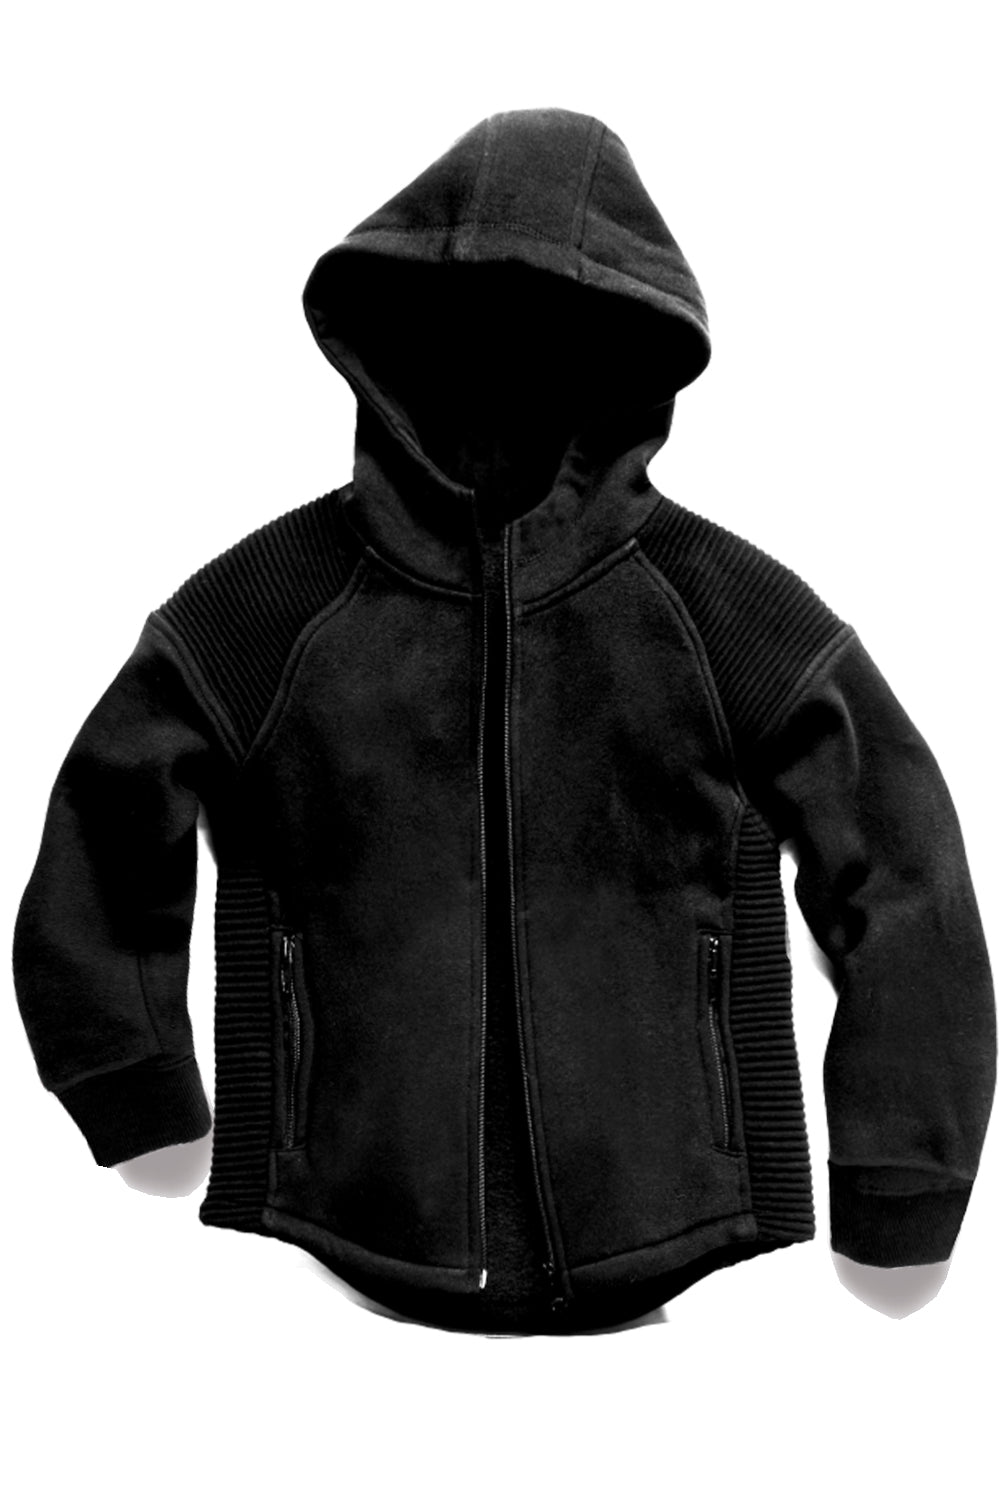 Jordan Craig - Kids Moto Zip Up Hoodie (Black)